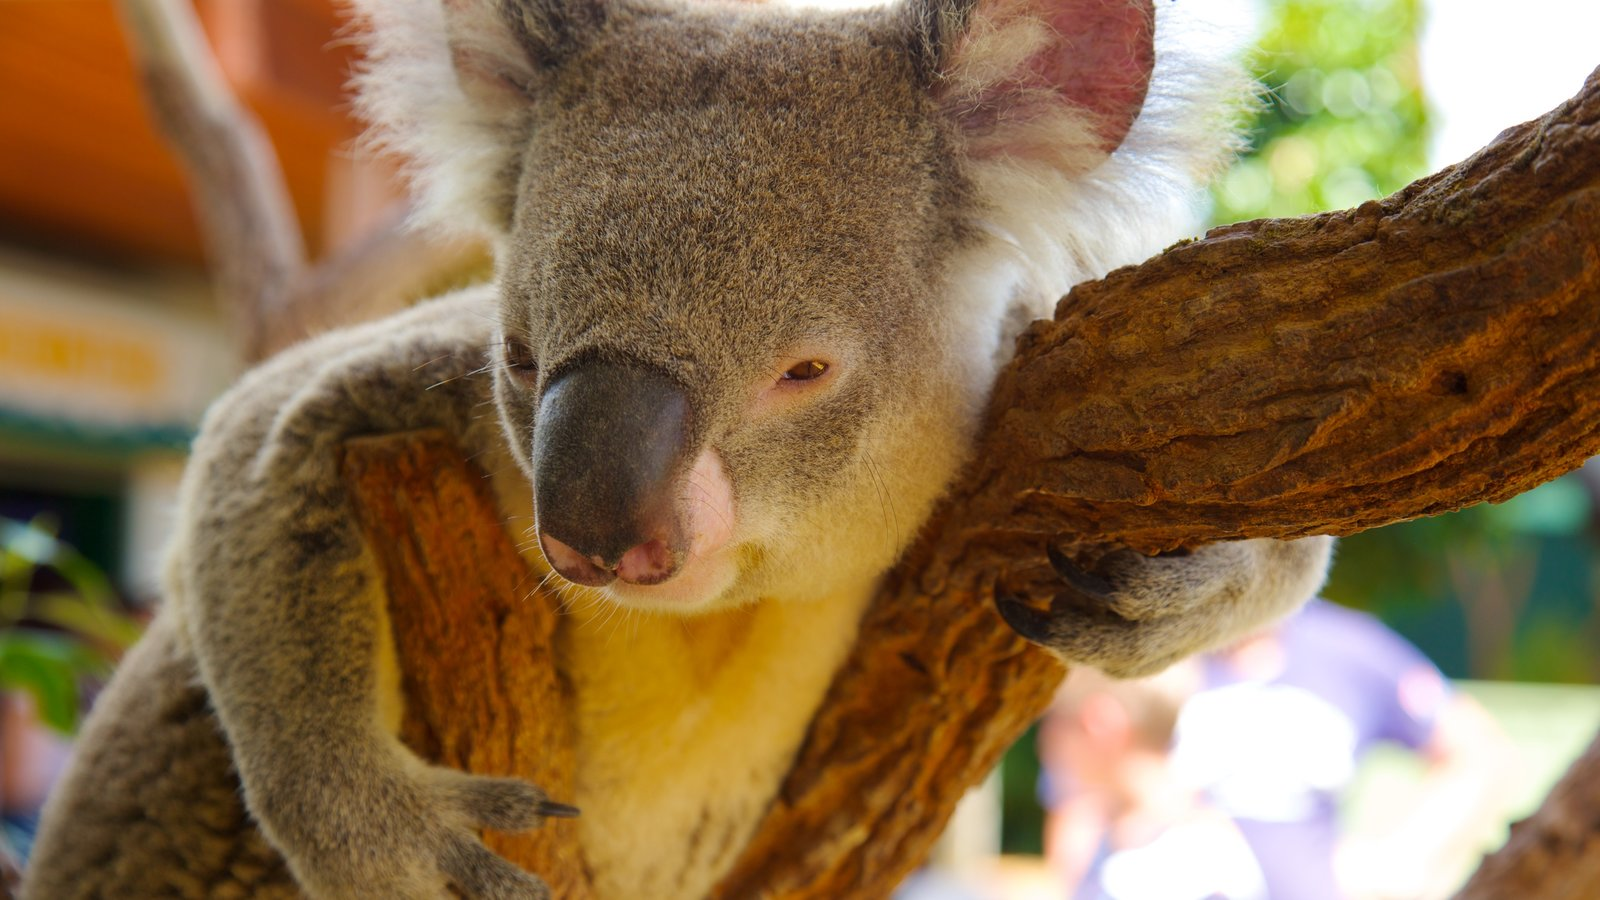 Sydney which includes cuddly or friendly animals and zoo animals